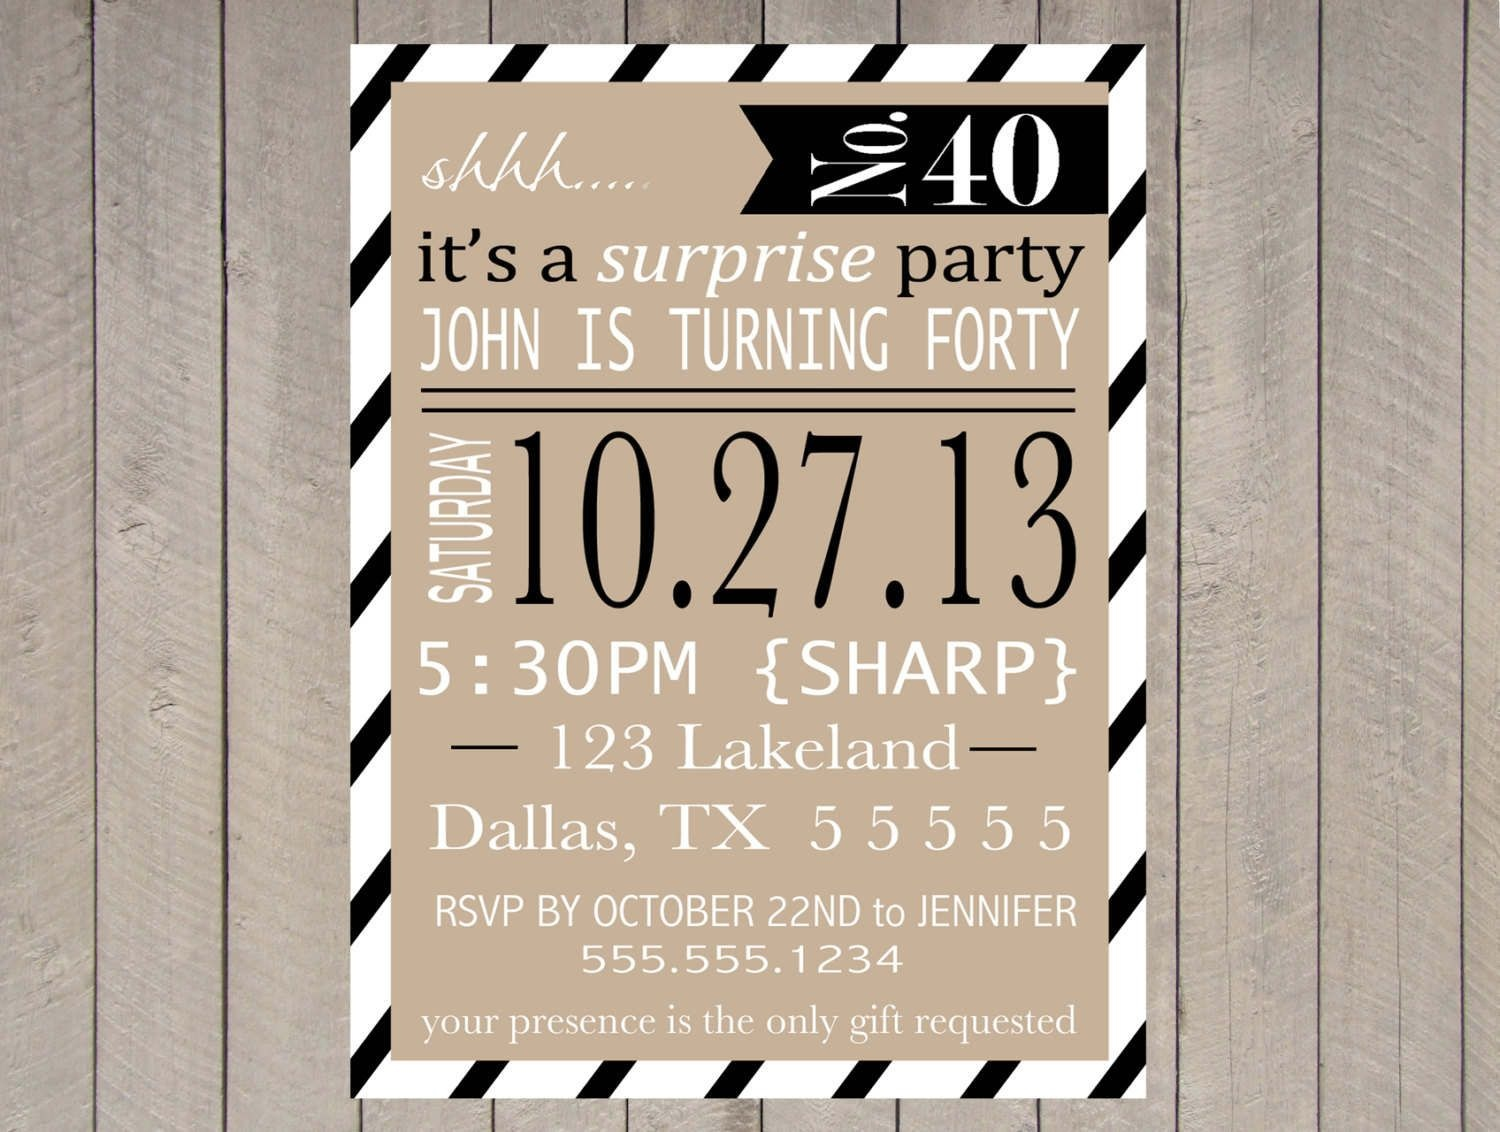 Free Printable Surprise Party Invitation Templates | Invitations In - Free Printable Surprise Party Invitation Templates